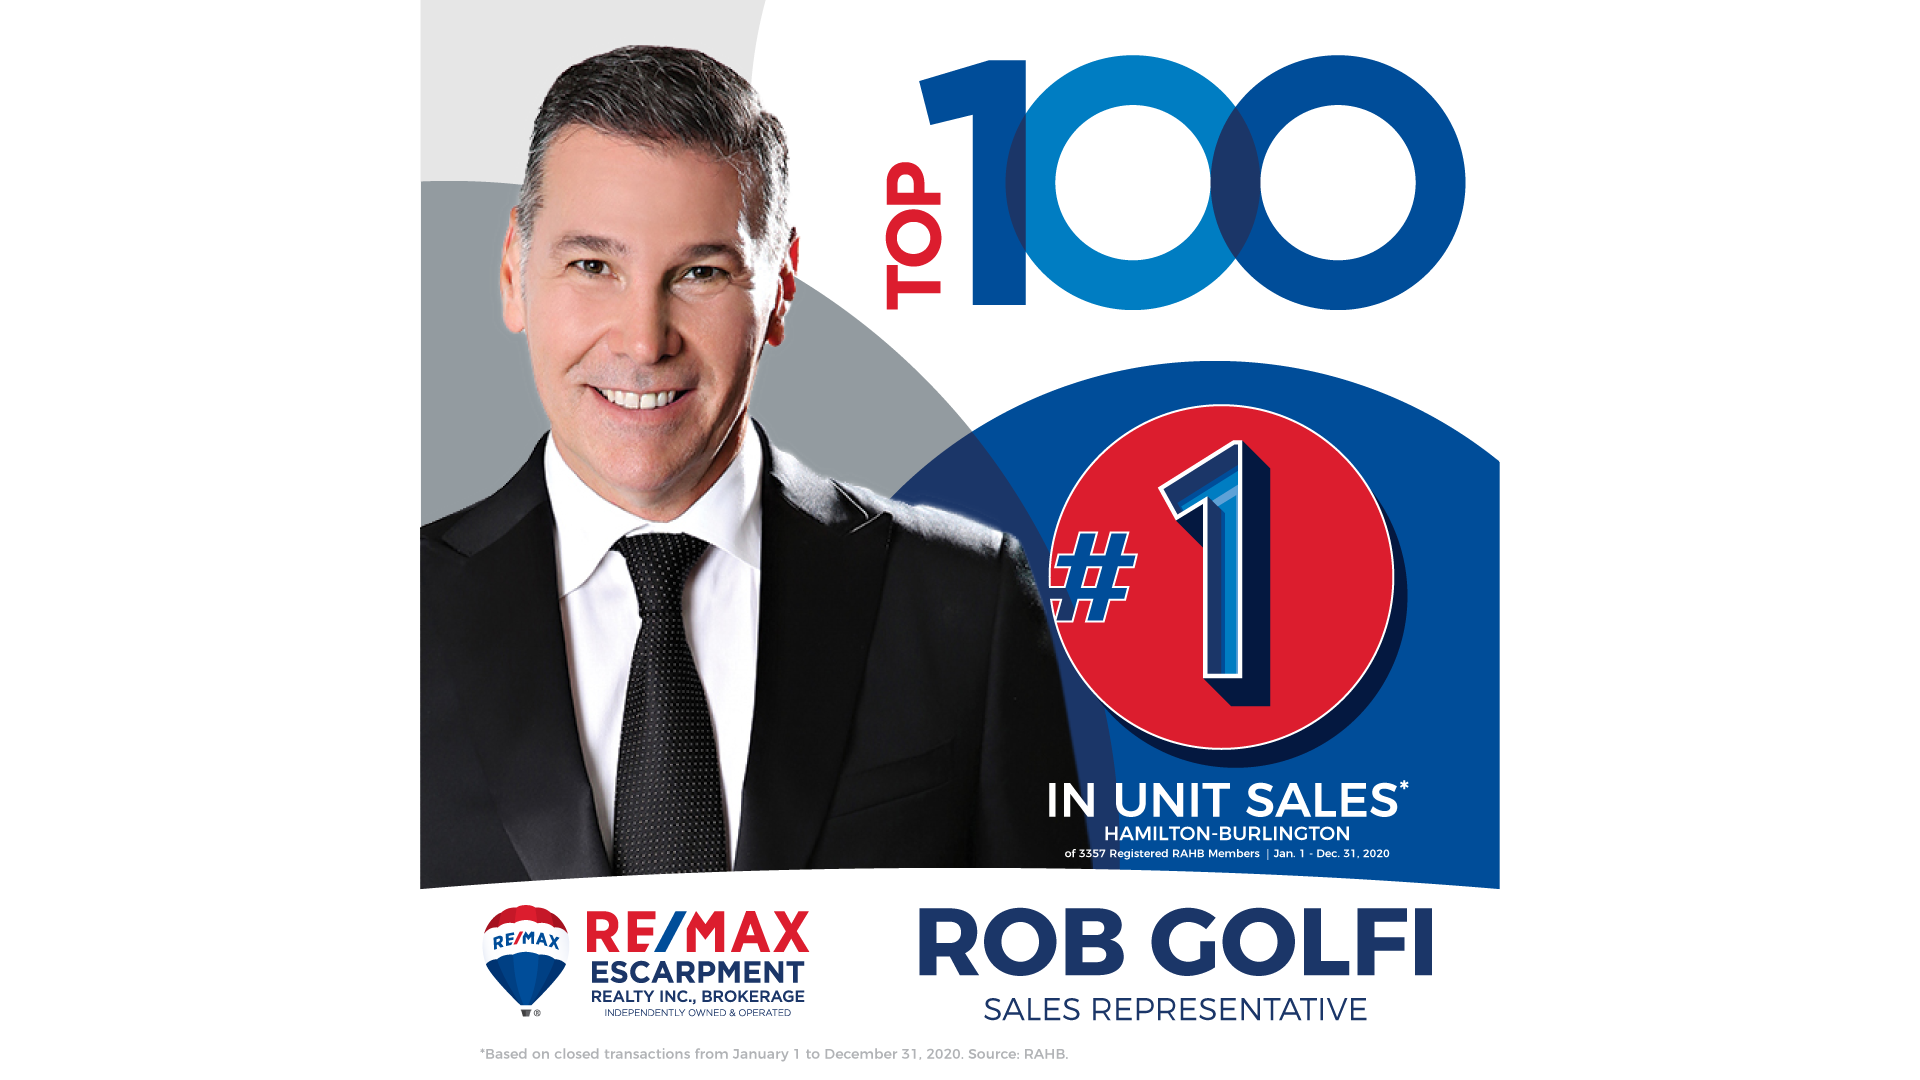 We did it! The Golfi Team ranked #1 in the Realtors Association of Hamilton and Burlington (RAHB) Top 100 for 2020. With 3,357 agents registered with the board, we're honoured to receive such a rank even in the face of such an unprecedented year!